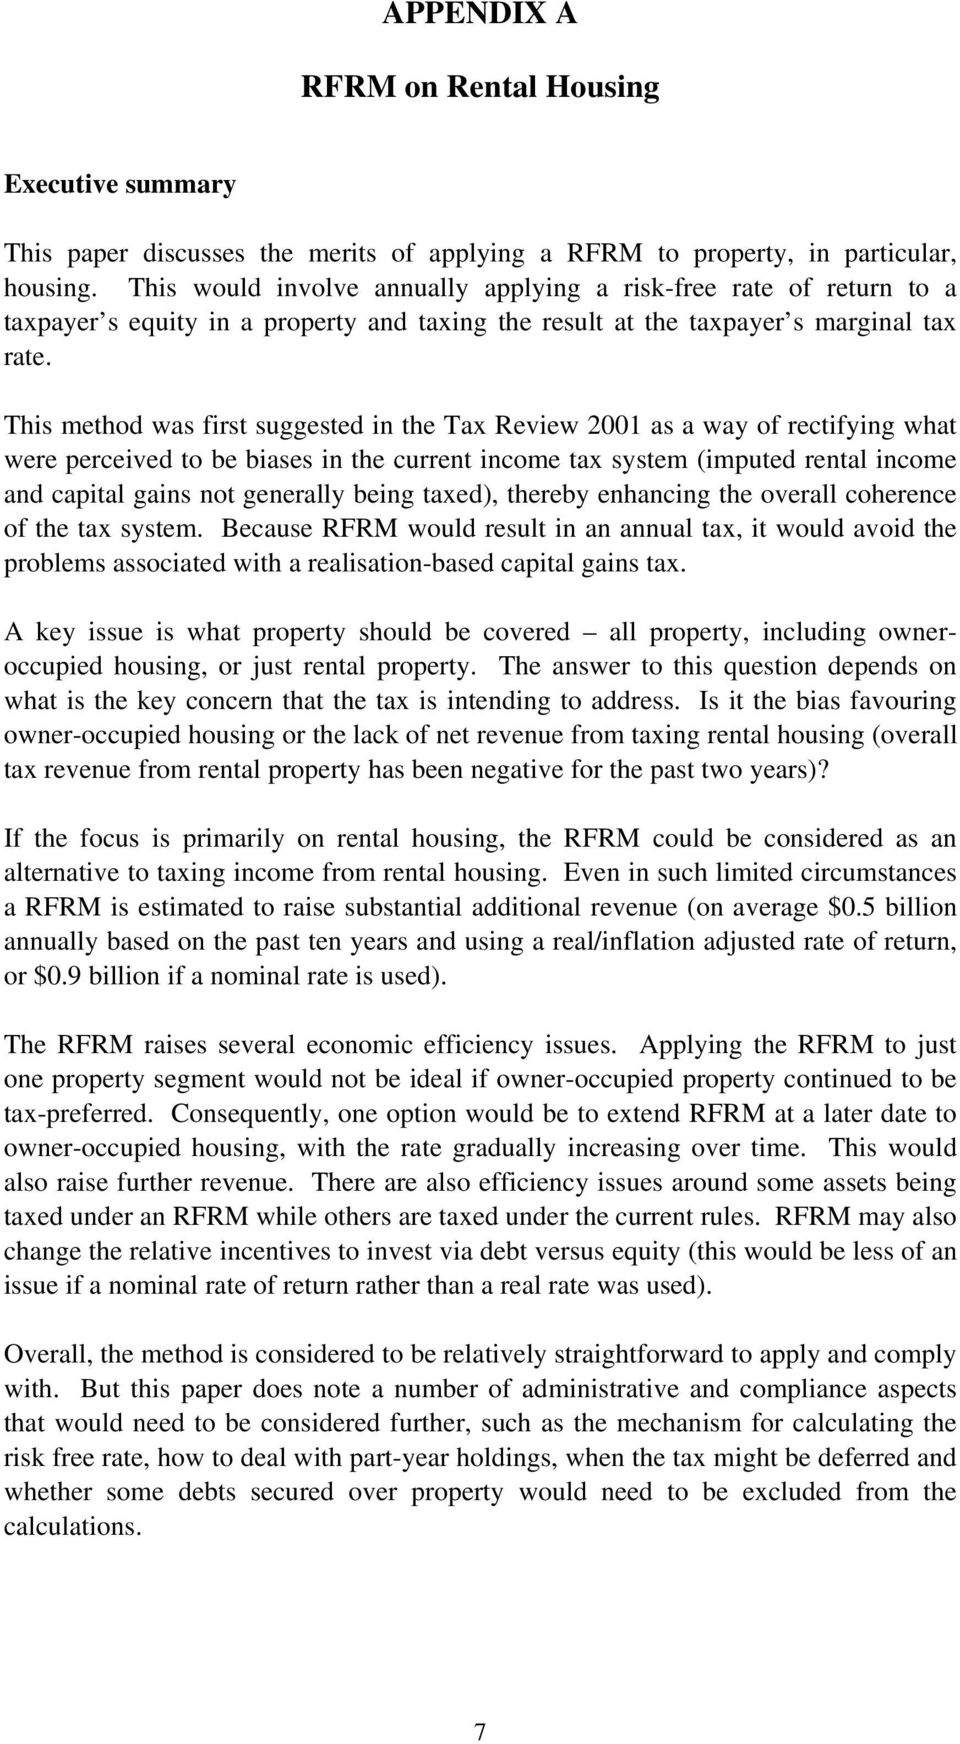 This method was first suggested in the Tax Review 2001 as a way of rectifying what were perceived to be biases in the current income tax system (imputed rental income and capital gains not generally